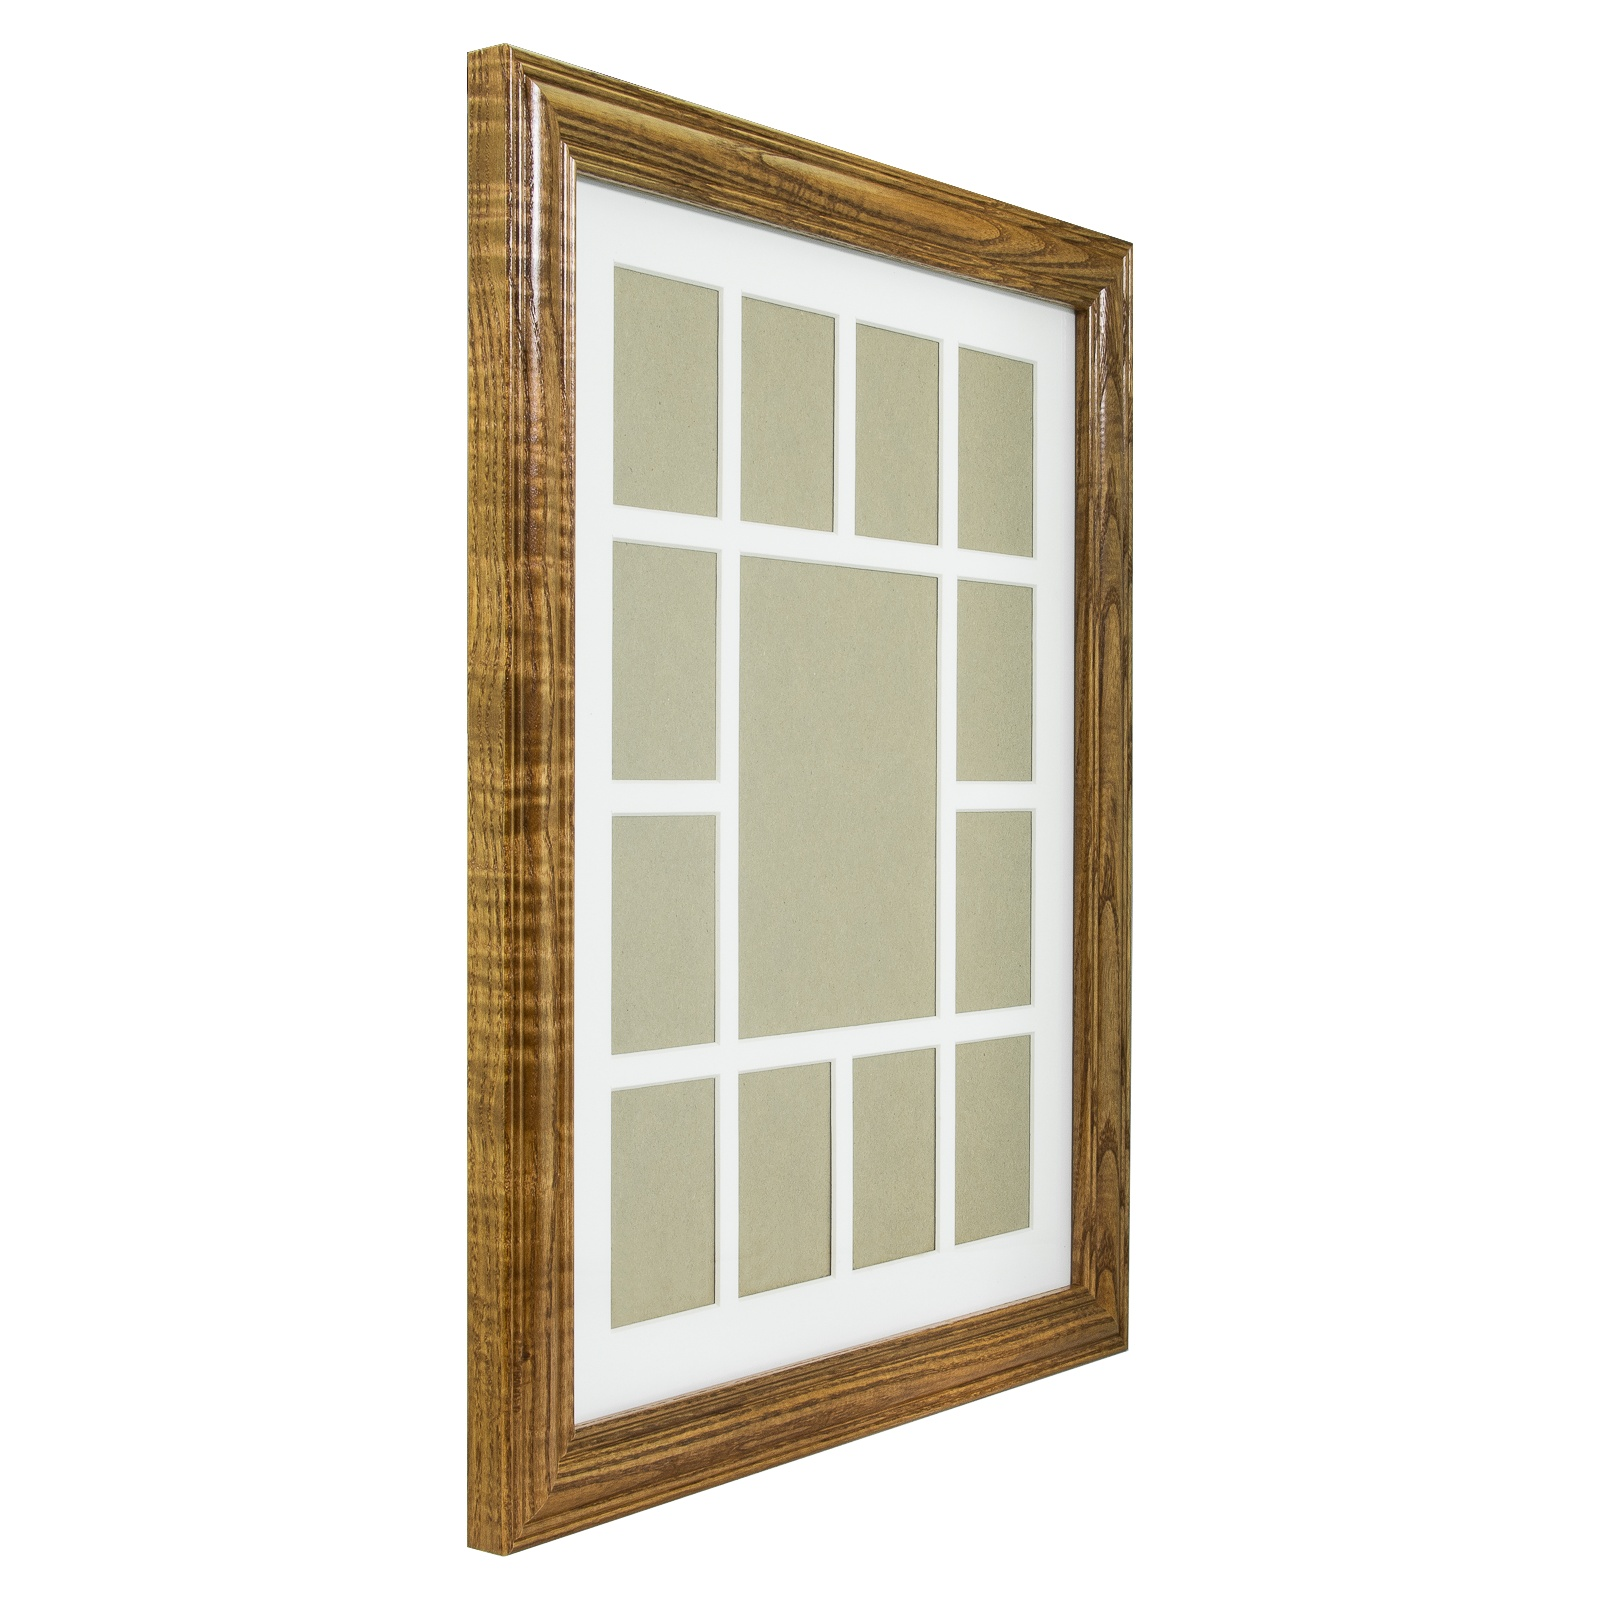 Craig Frames 12x16 Quot Brown Wood Picture Frame White